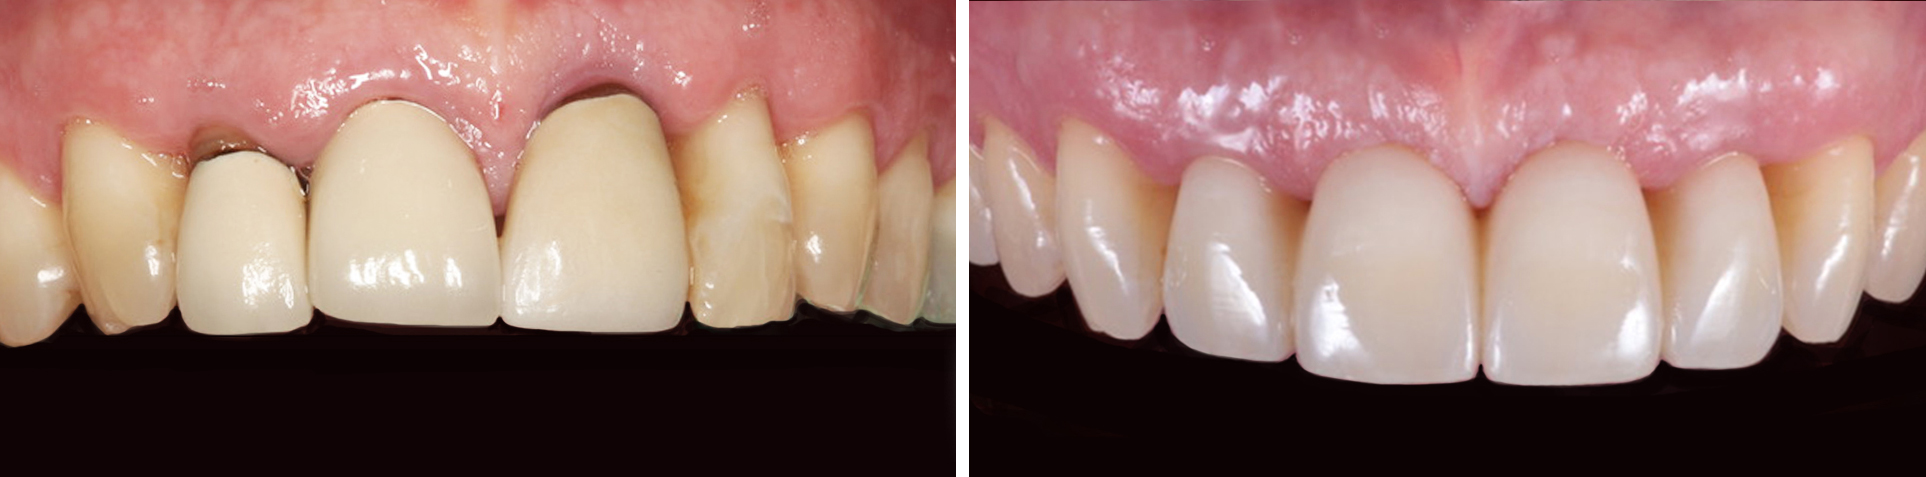 sinus bone graft before after